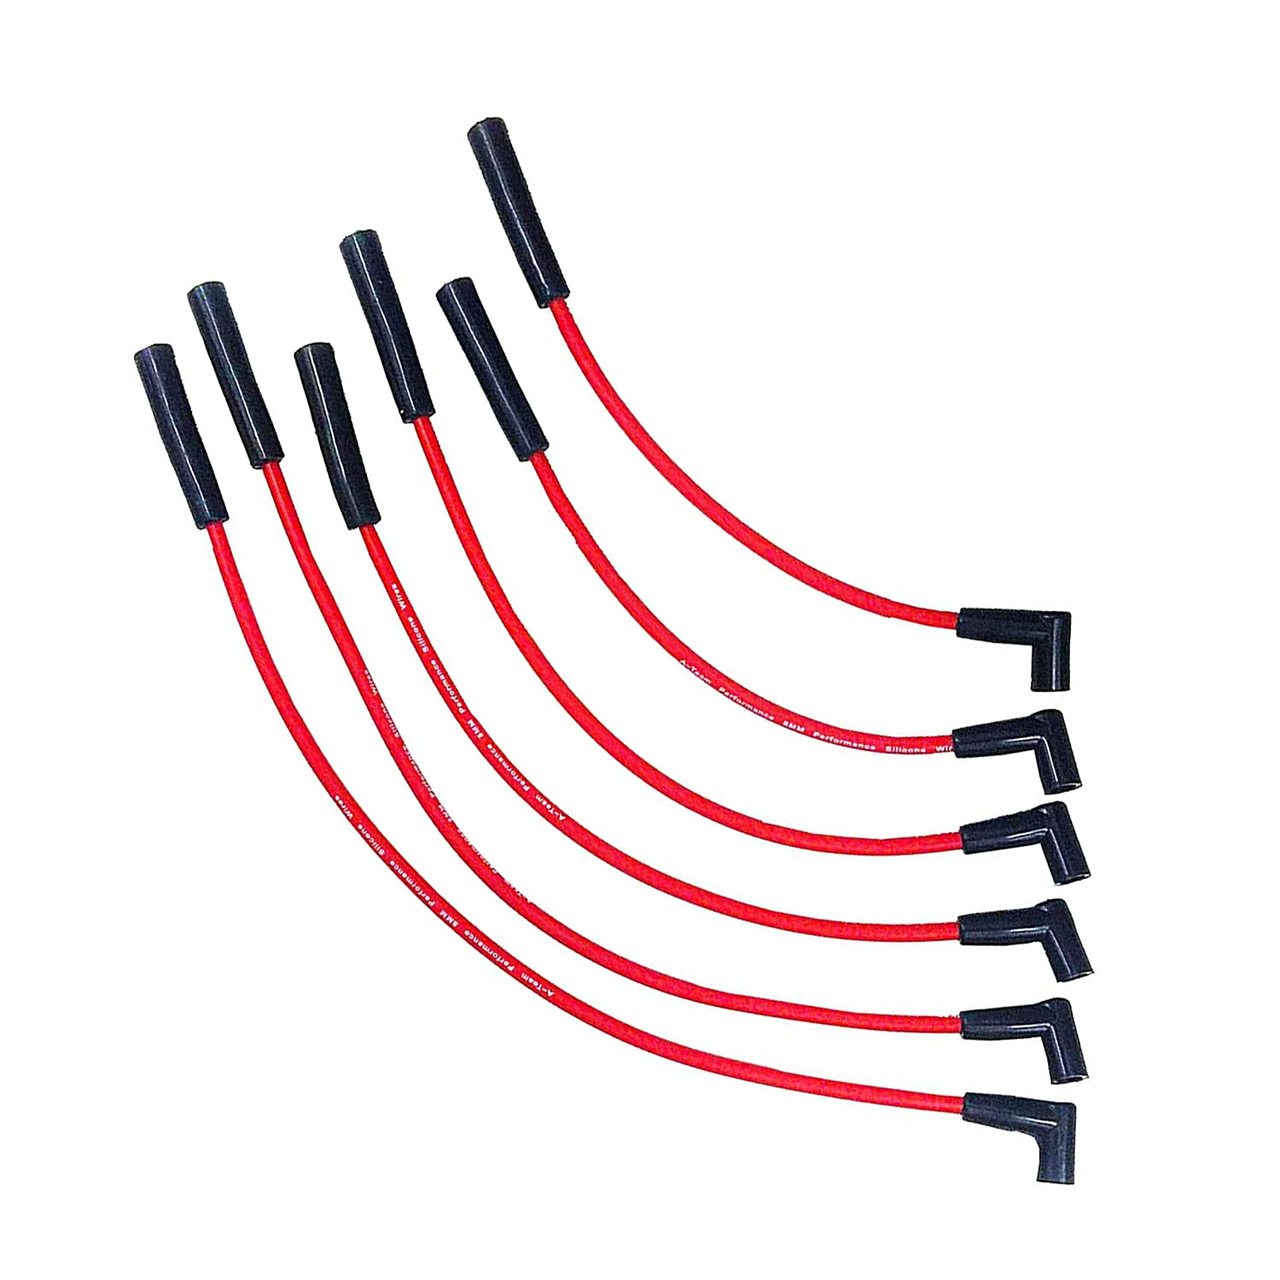 A-Team Performance 8.0mm Red Silicone Spark Plug Wires AMC/JEEP 199 232 252 258 282 Straight 6 Wires